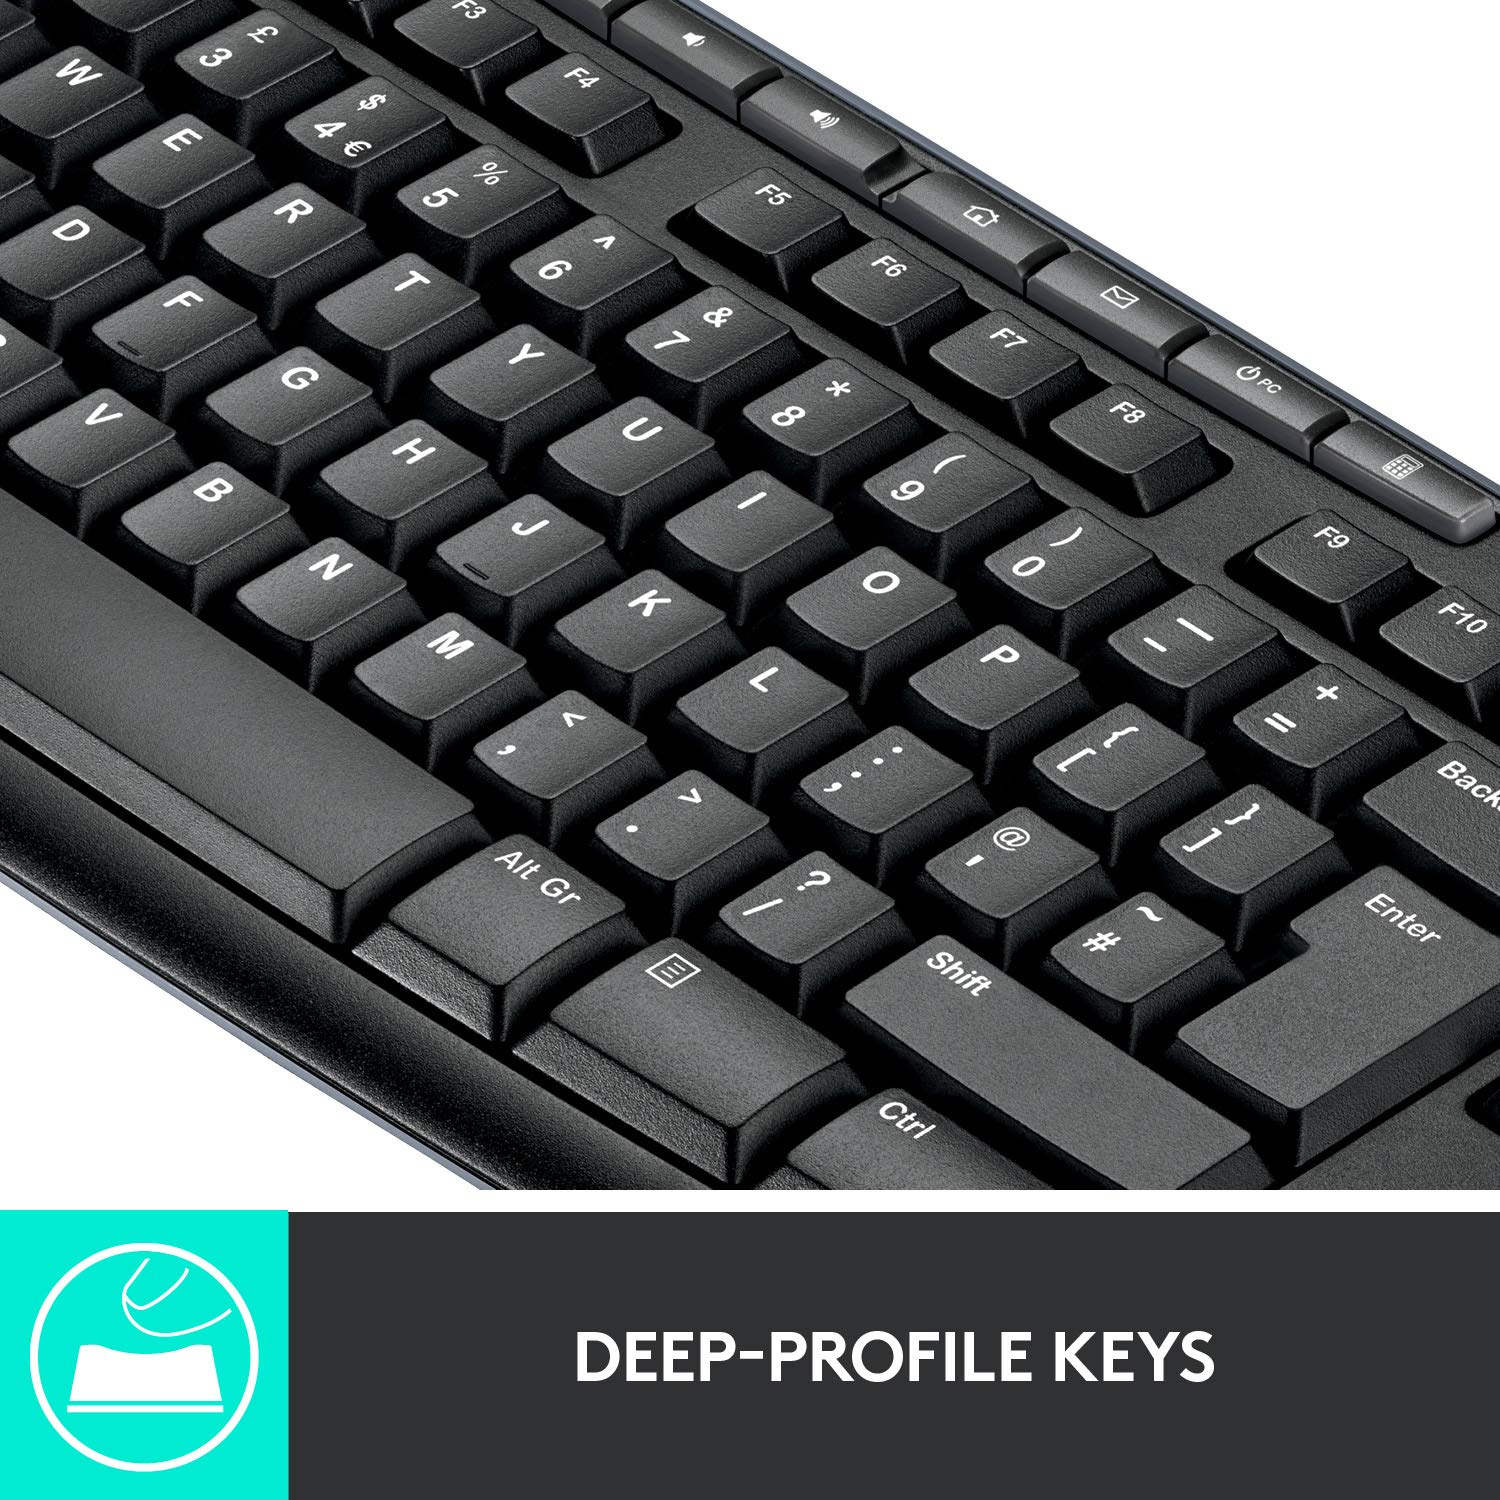 Logitech MK270 Wireless Keyboard and Mouse Combo — Keyboard and Mouse Included, Long Battery life